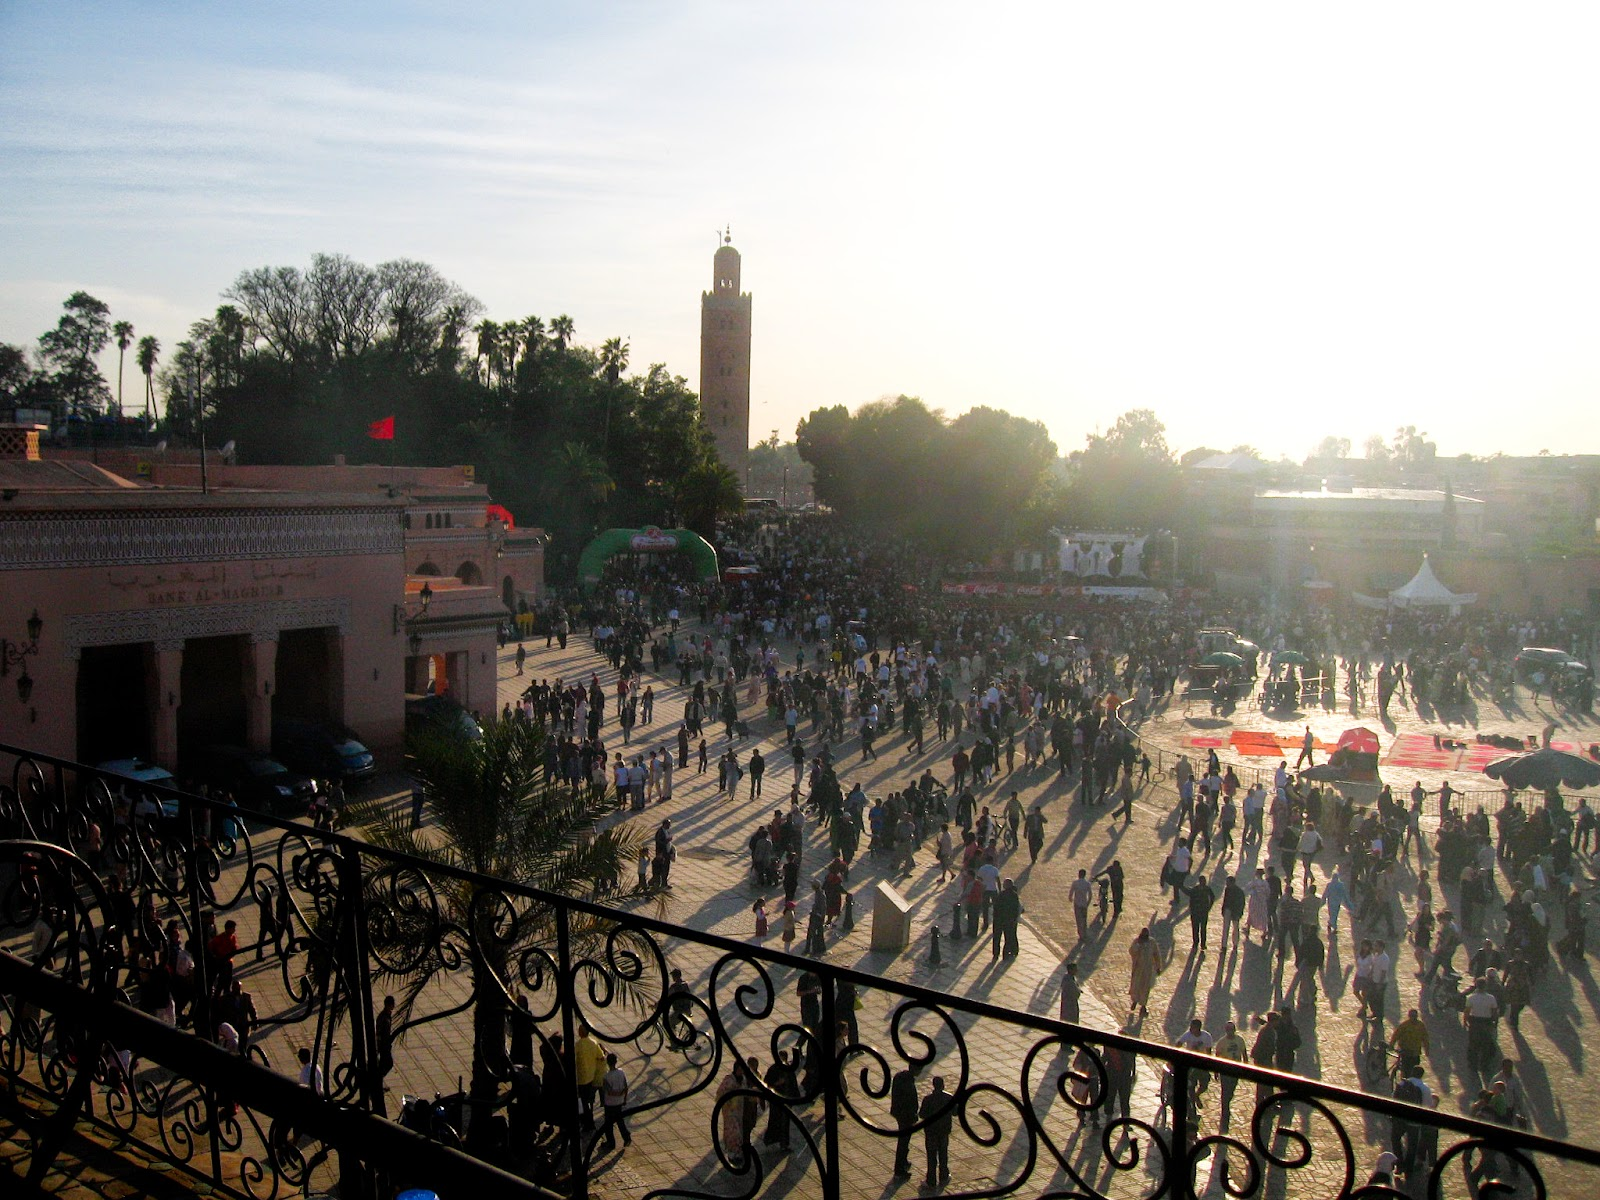 Marrakech top tourist attractions: Jemaa El Fna - grand market of Marrakech during sunset, Koutobia Mosque in the back